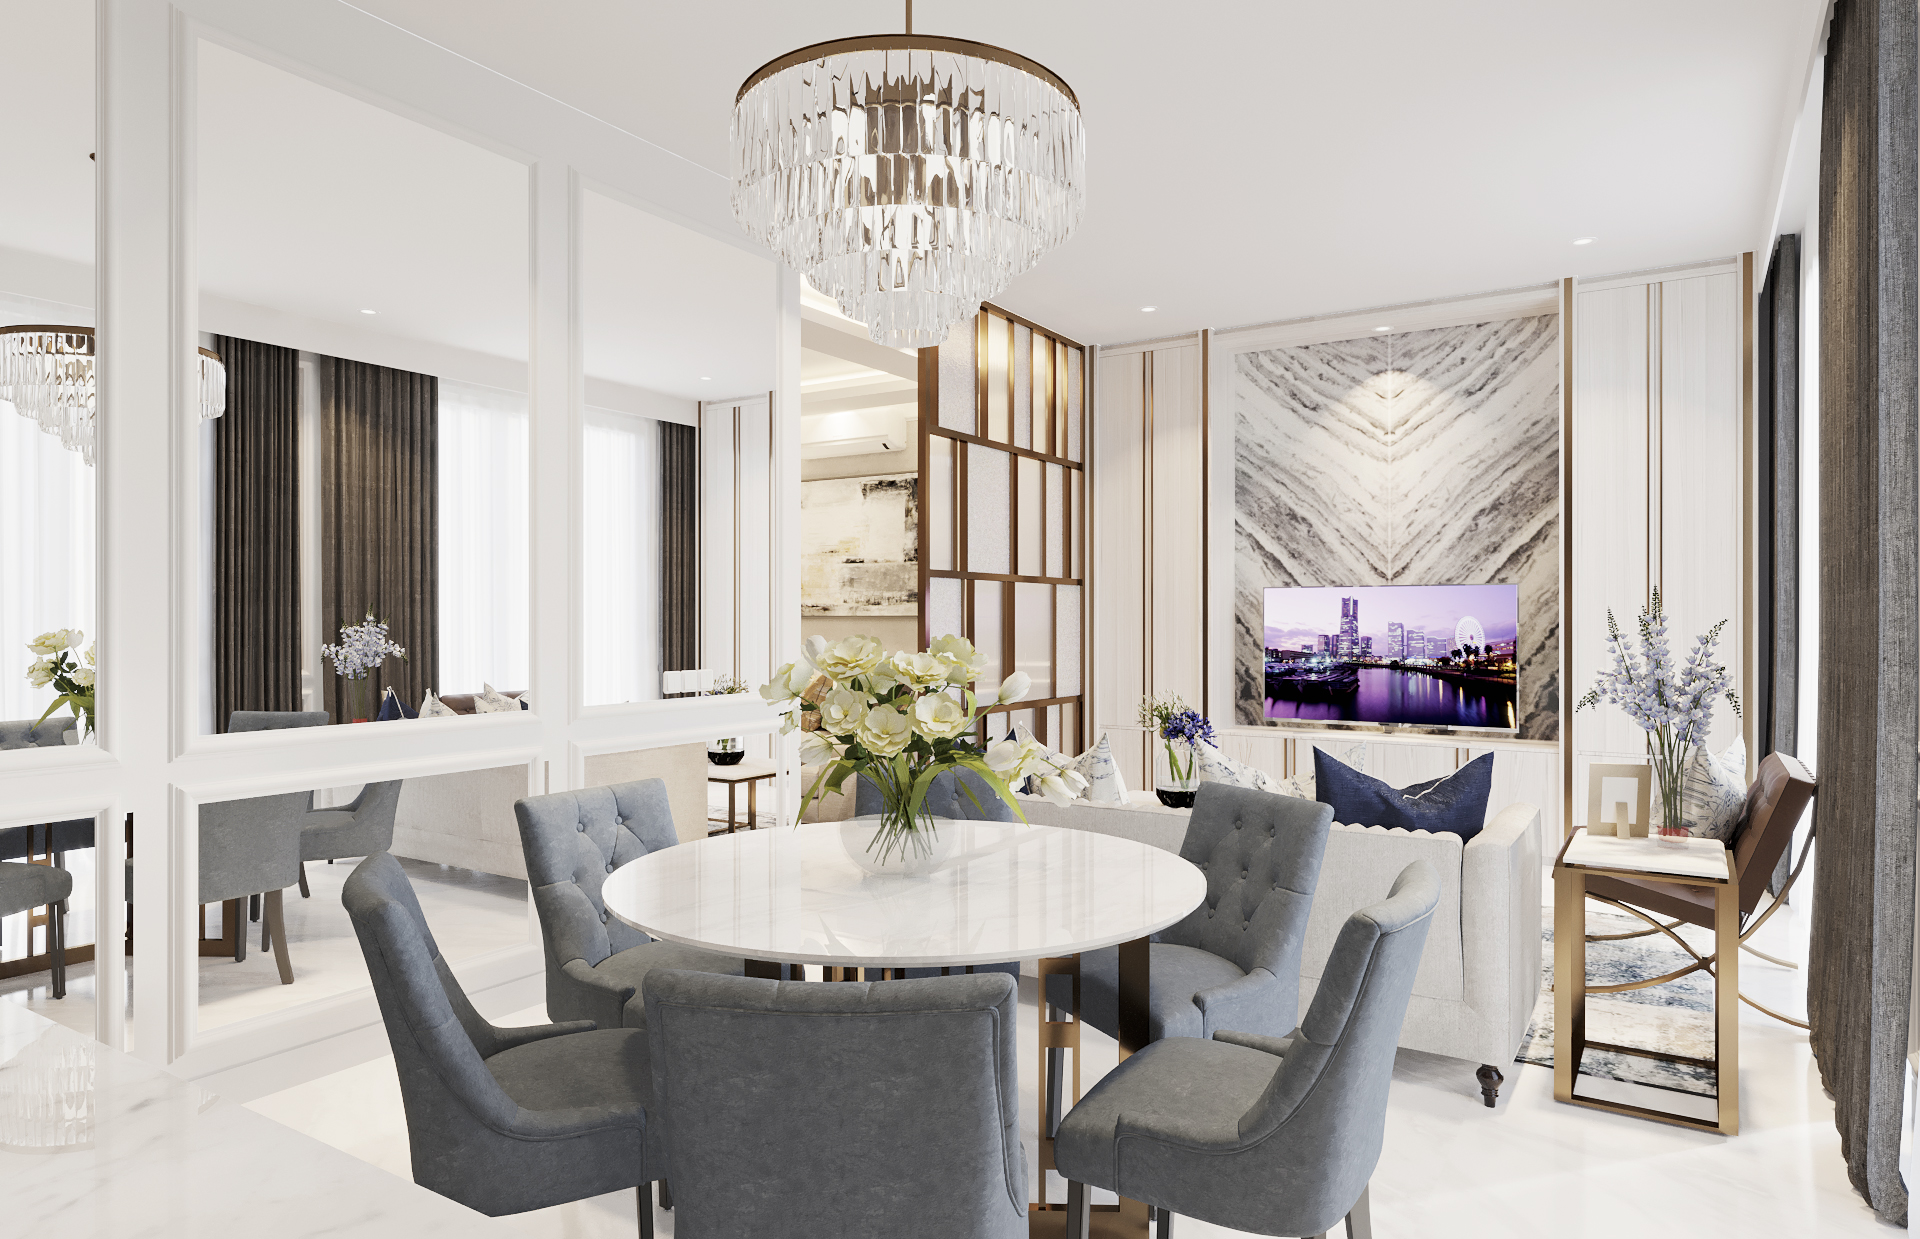 AM House - Dining Room (Look 1)